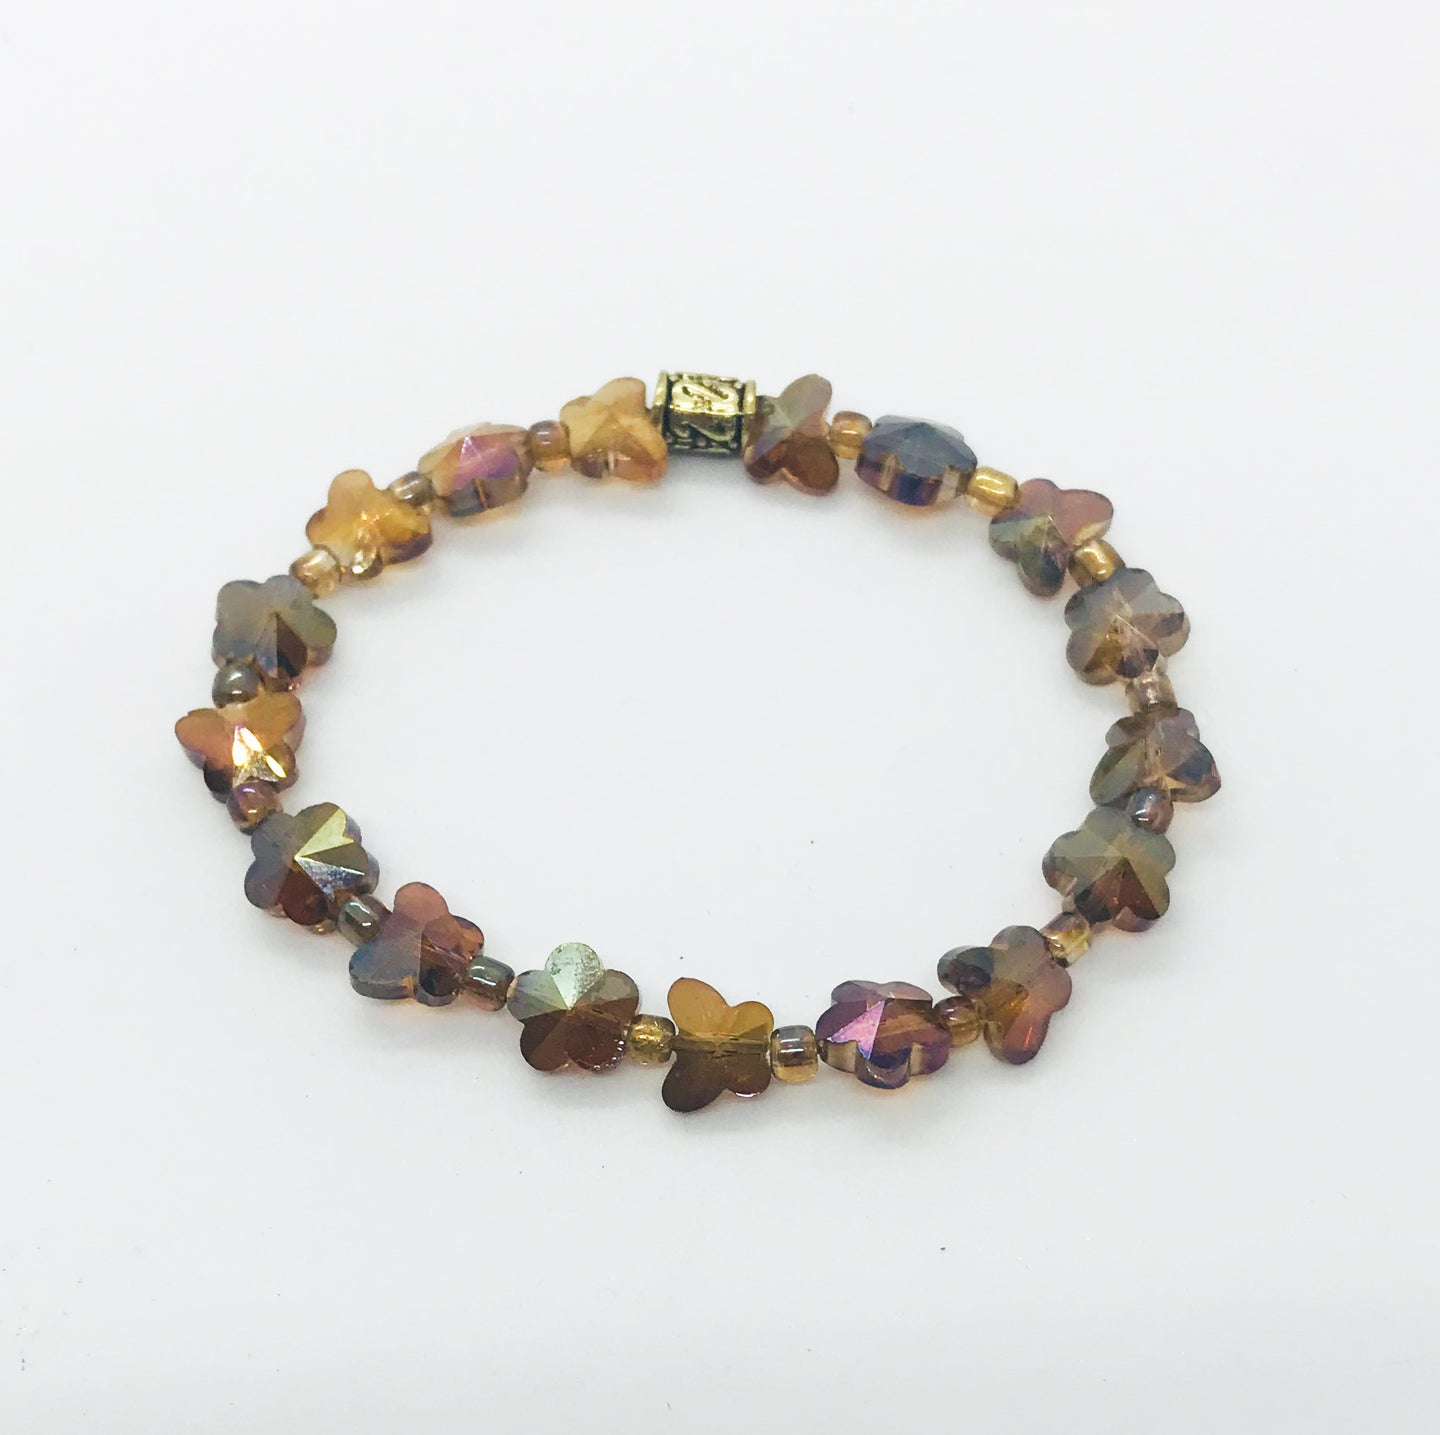 Glass Bead Stretchy Bracelet - B685